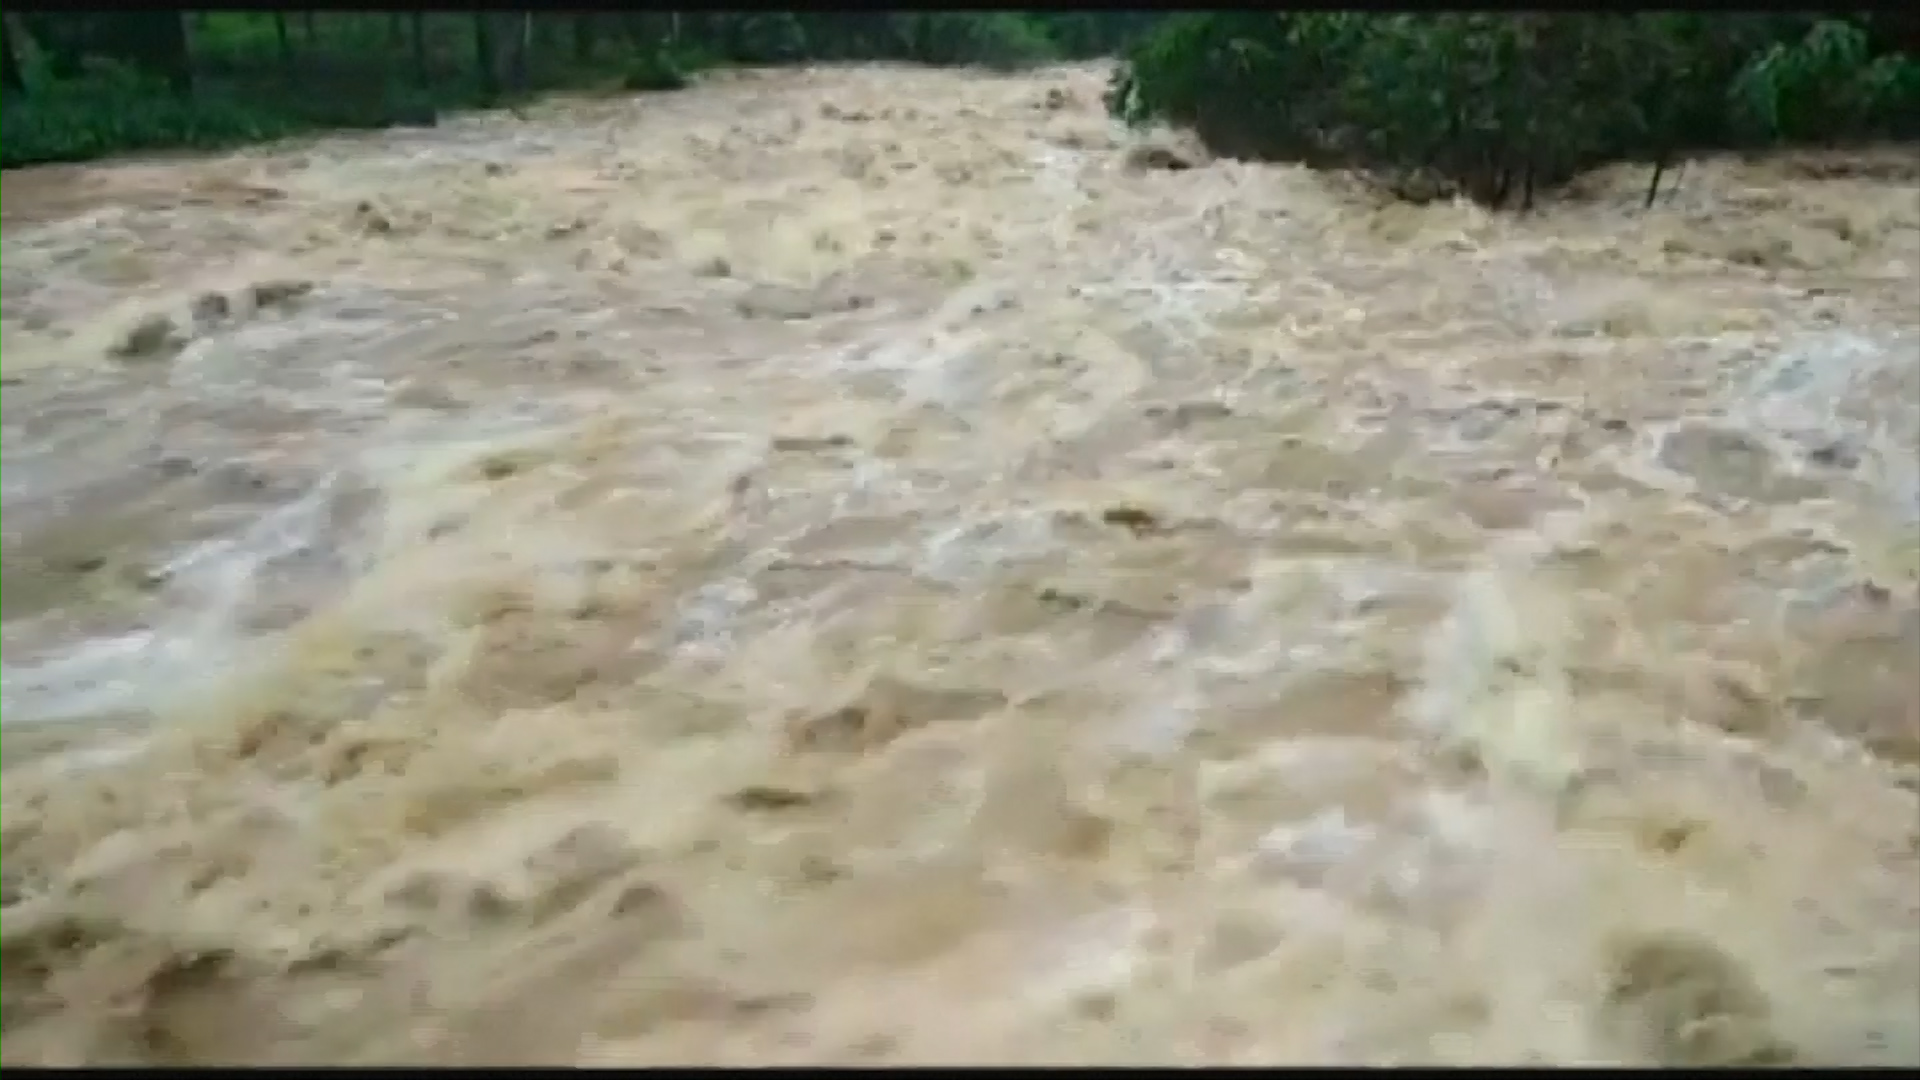 27 dead as heavy rains trigger landslides and flash floods in Kerala